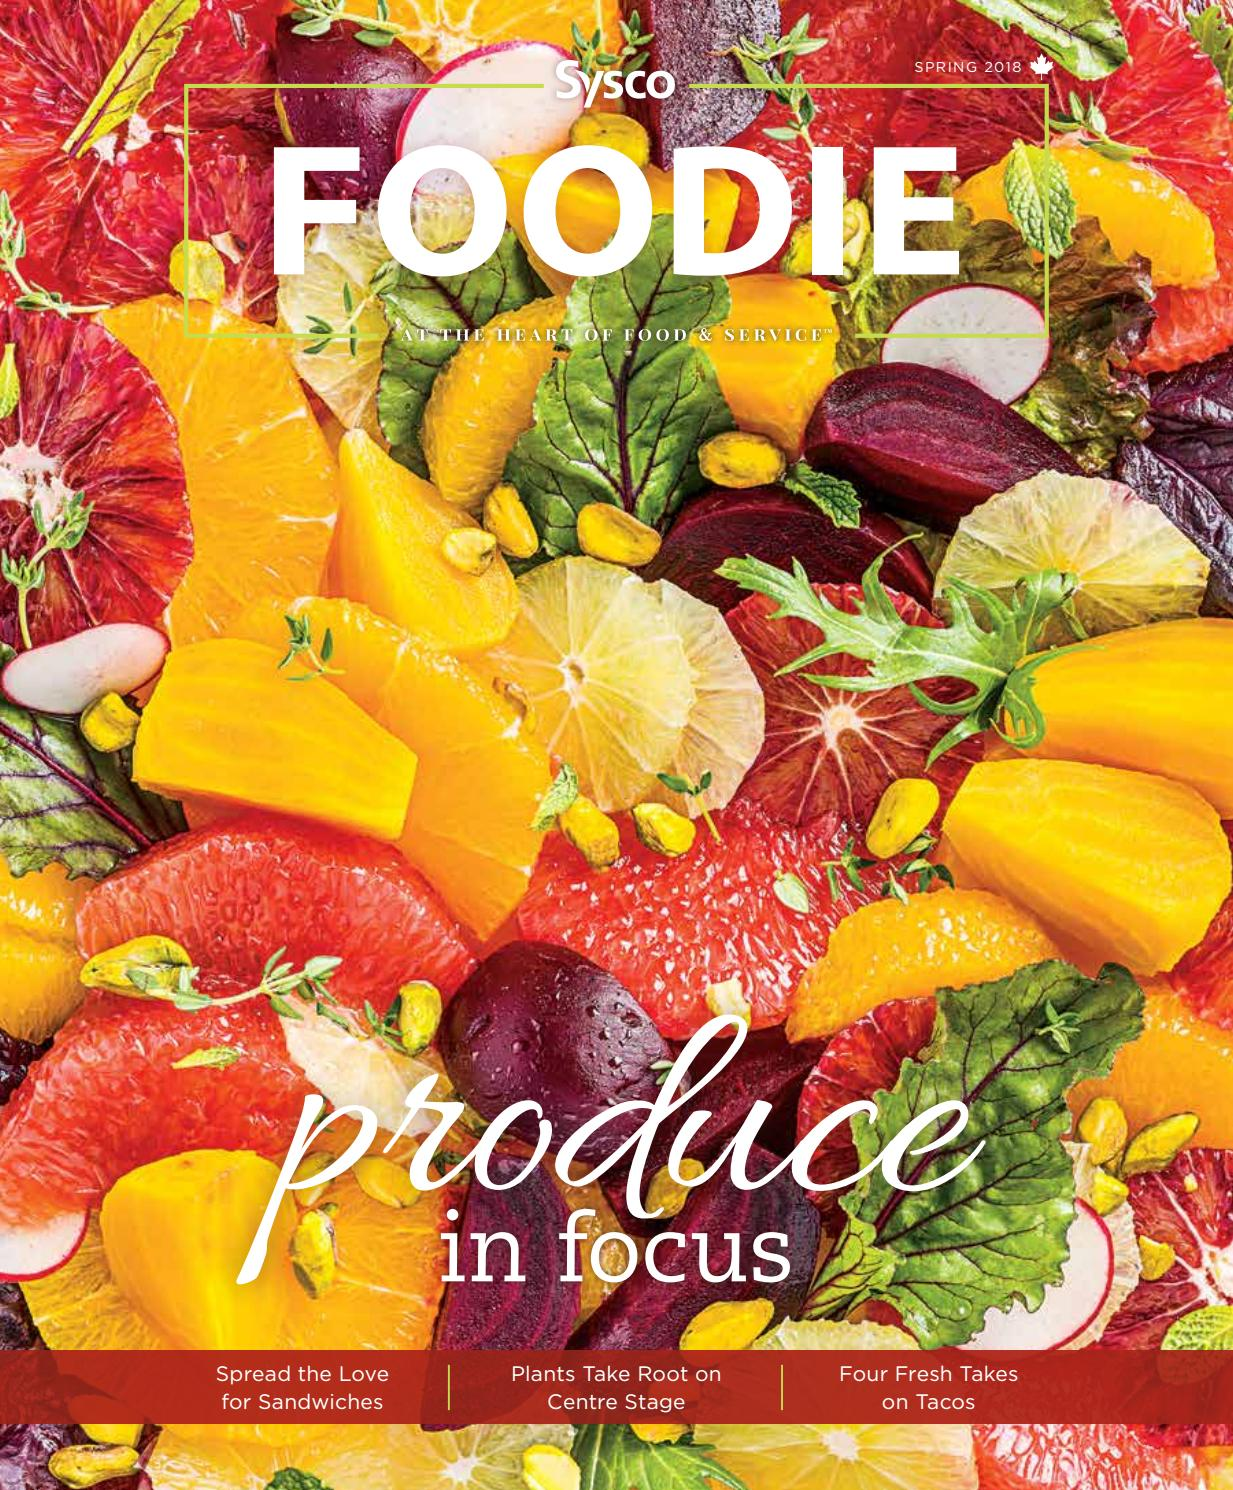 Sysco Foodie - Spring 2018